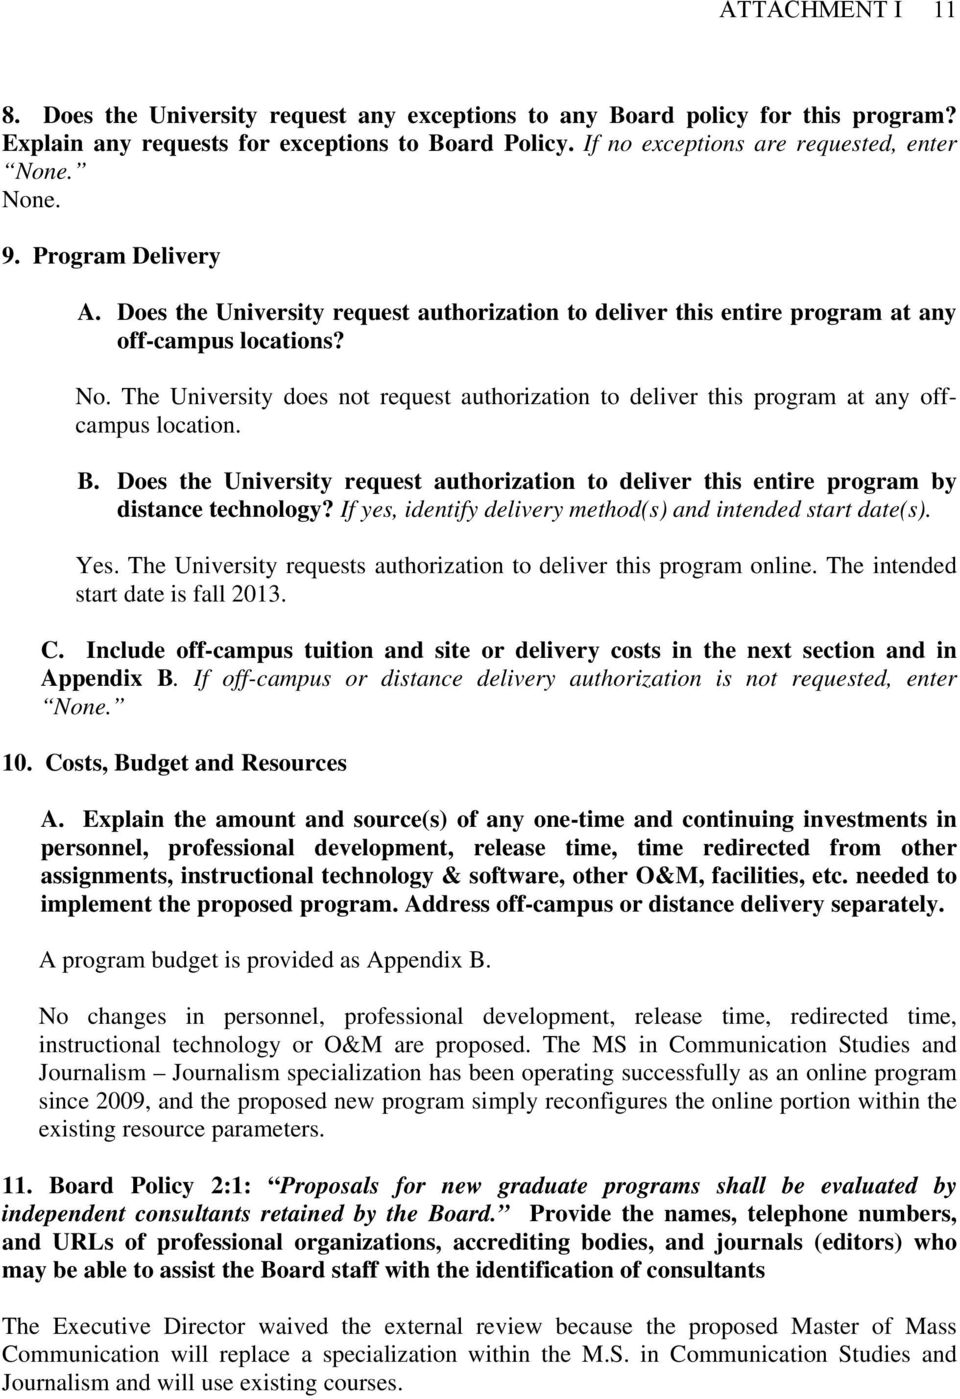 The University does not request authorization to deliver this program at any offcampus location. B. Does the University request authorization to deliver this entire program by distance technology?